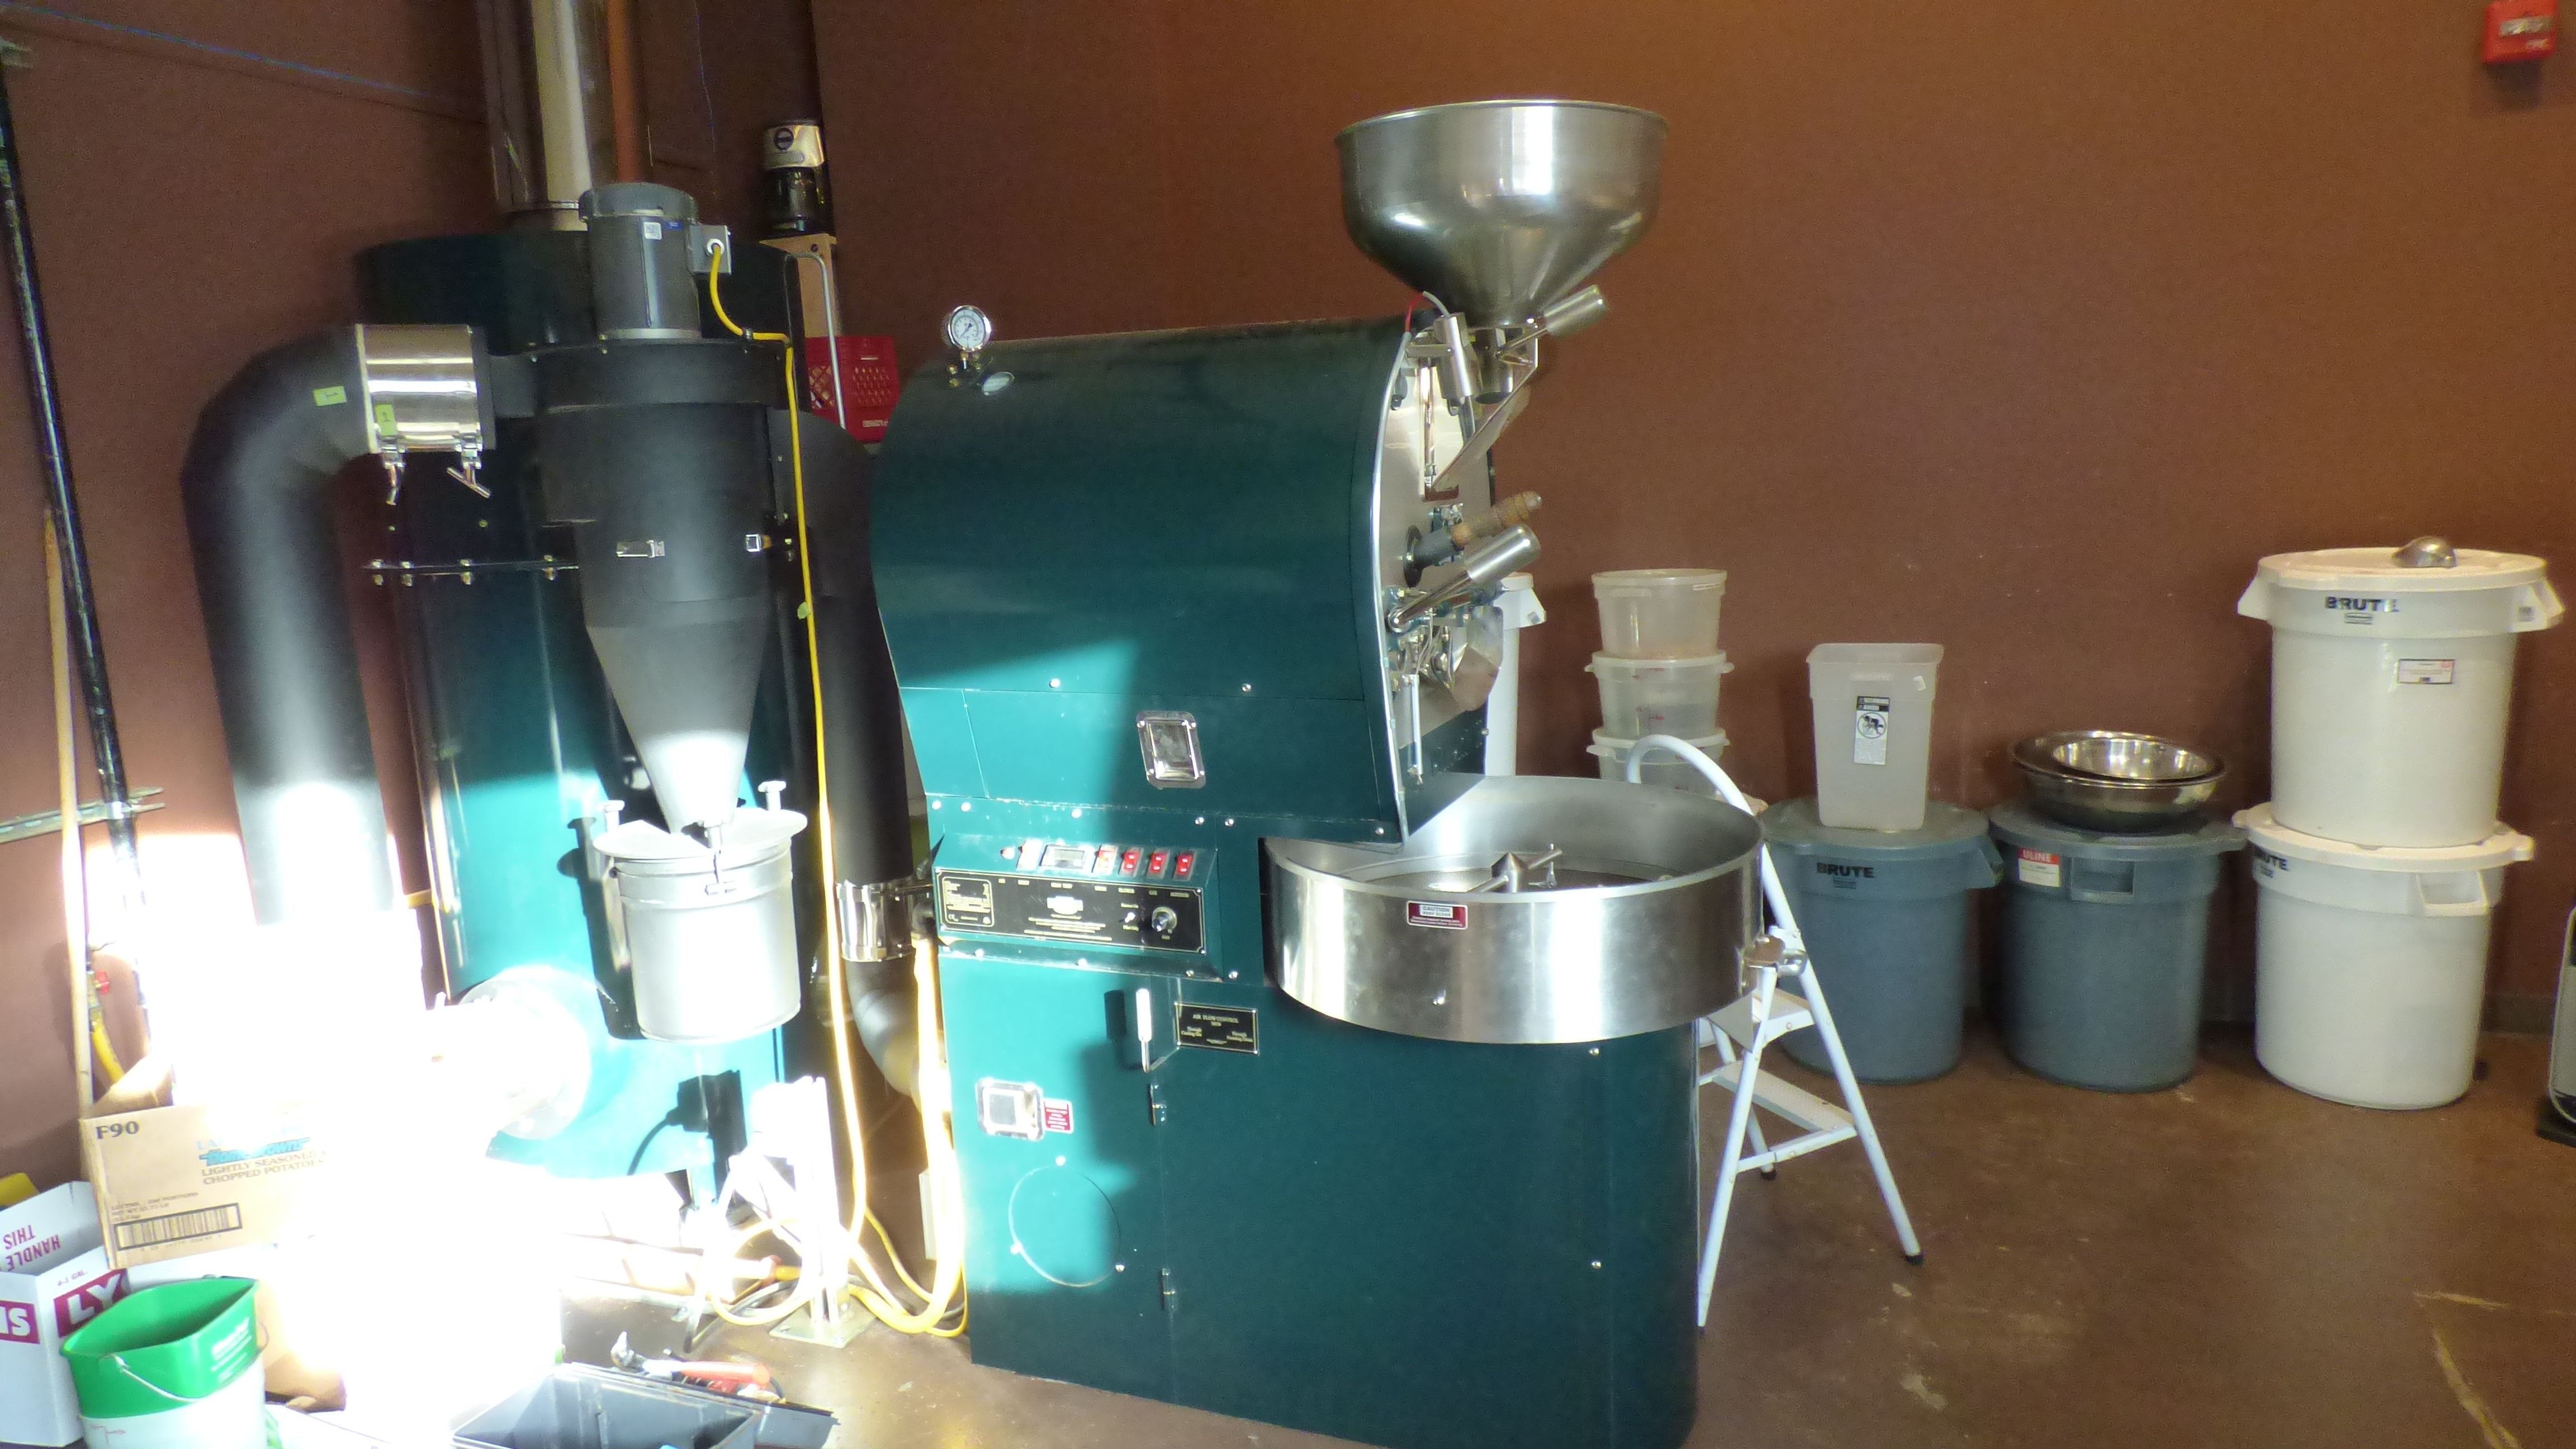 The Coffee Oasis Bremerton Coffee Grinder And Roaster The Aroma Was Wonderful Kitsap Charity Kitsapcares Real Coffee Coffee Shop Business Coffee Business